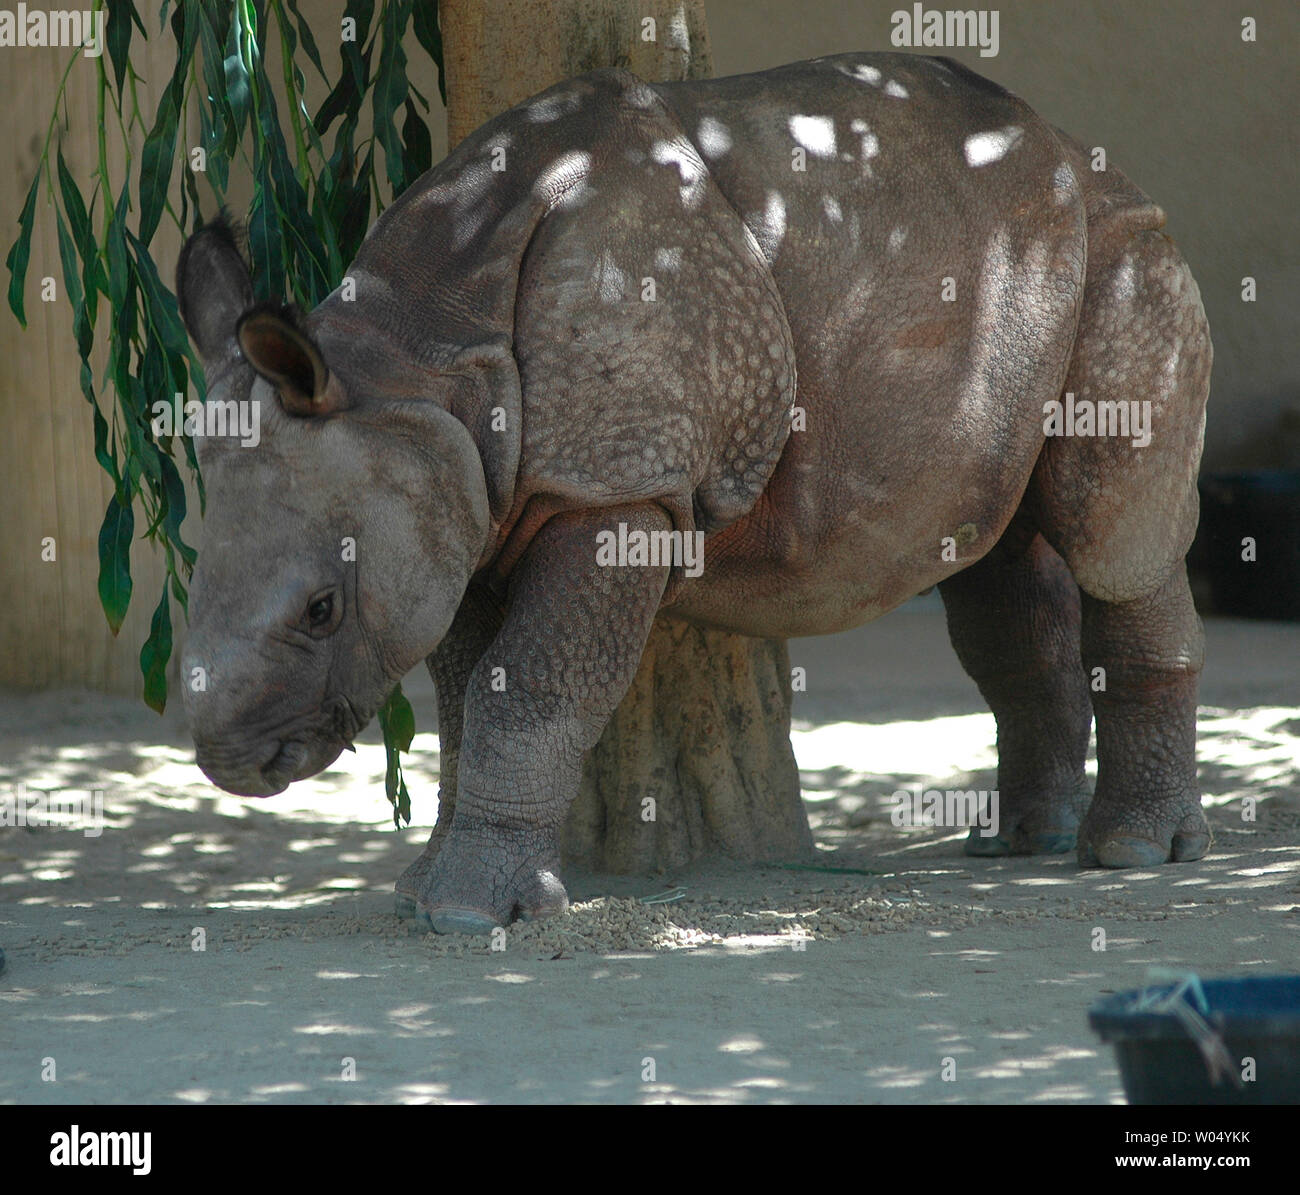 Newly Named Ecko A 14 Week Old Indian Rhino Stands In His Enclosure At The San